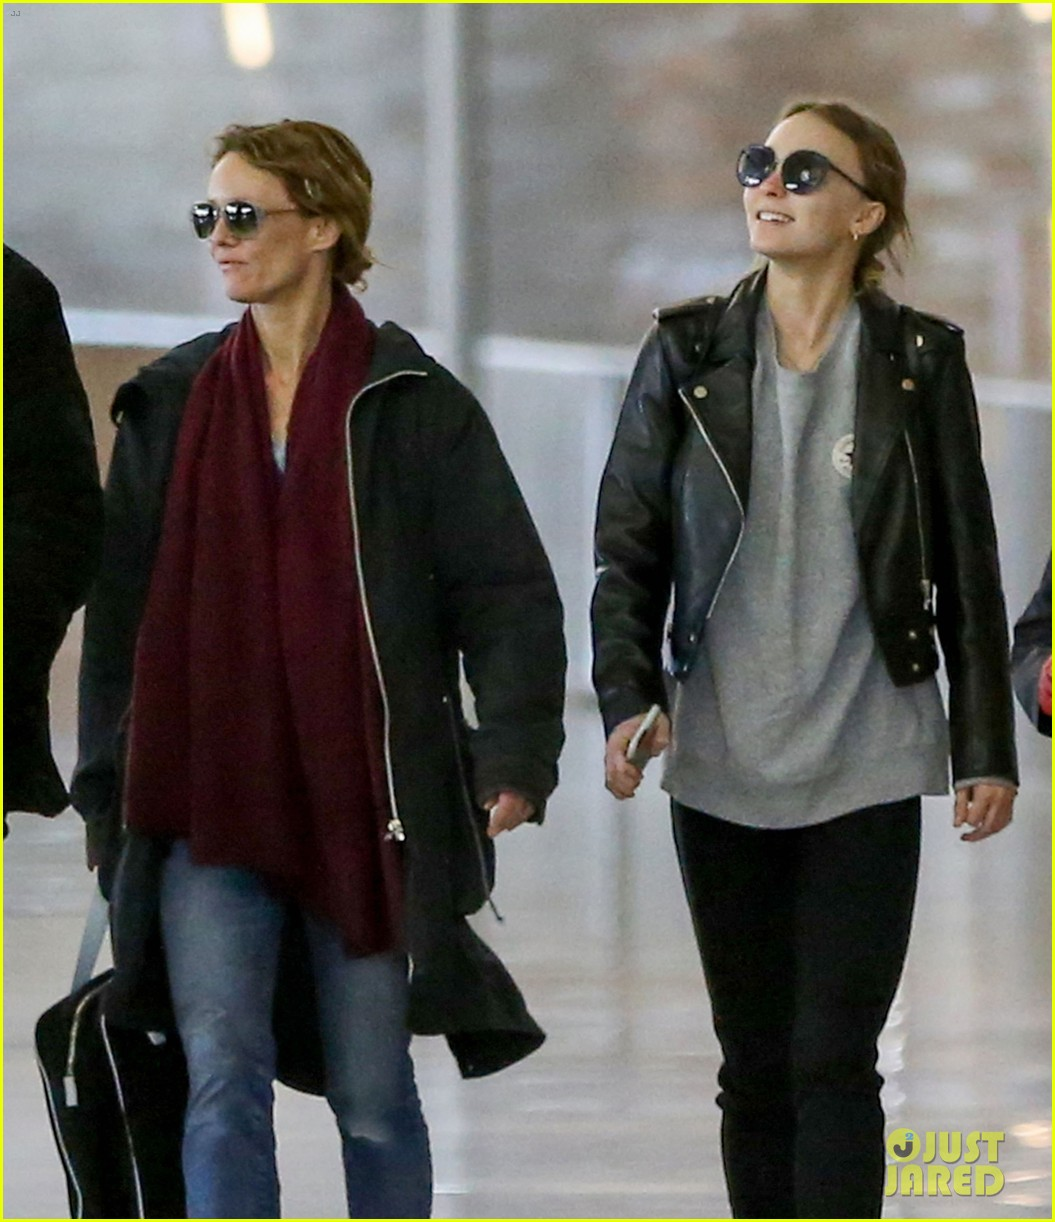 Back to previous page home garfield holiday celebrations - Lily Rose Depp Gets In Some Family Time Over The Holidays Photo 3834717 Lily Rose Depp Vanessa Paradis Pictures Just Jared